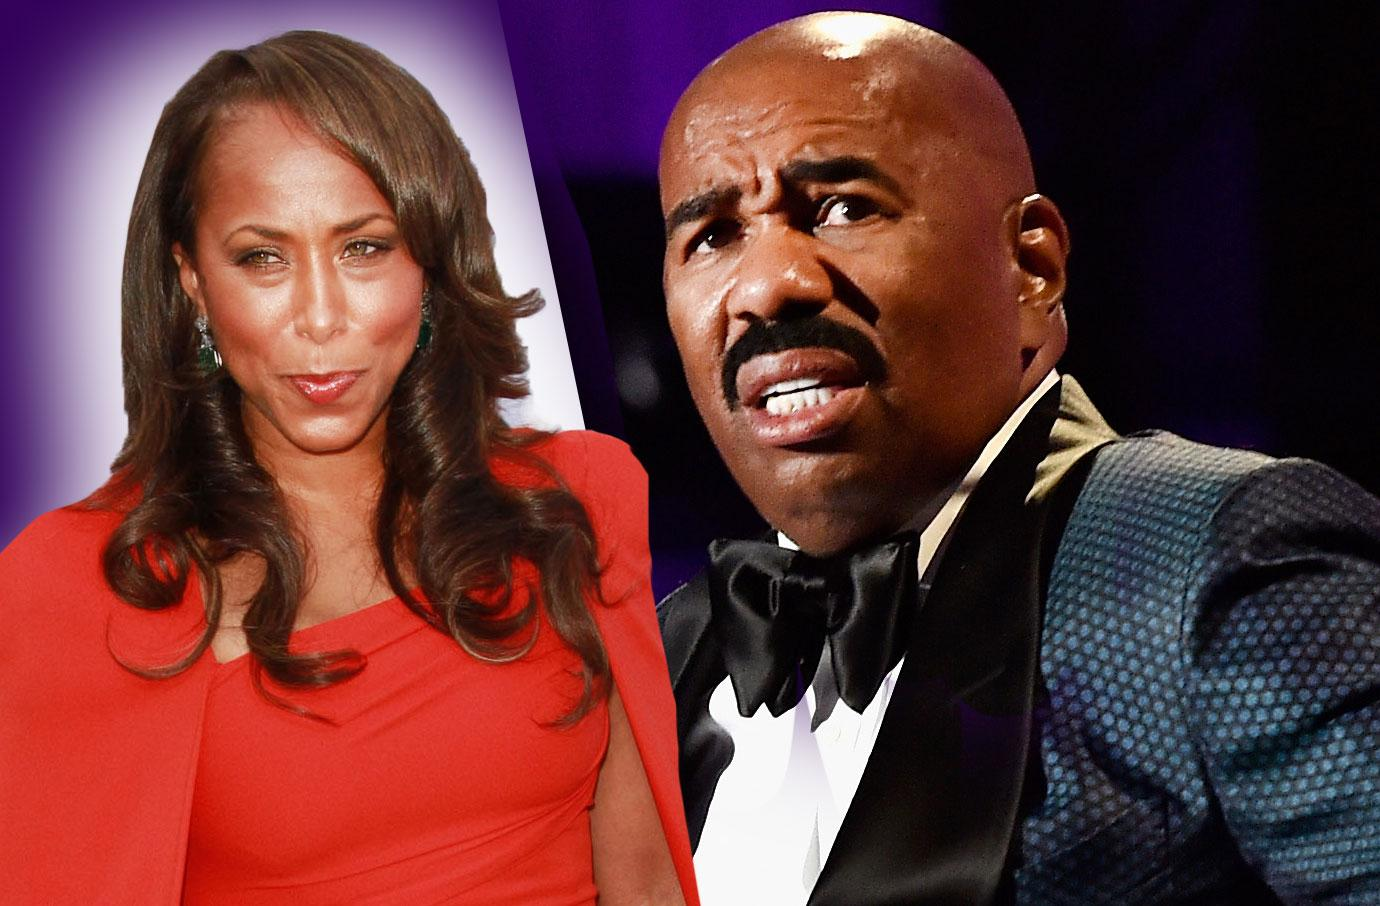 Steve Harvey Fights To Save Marriage Amid Scandals